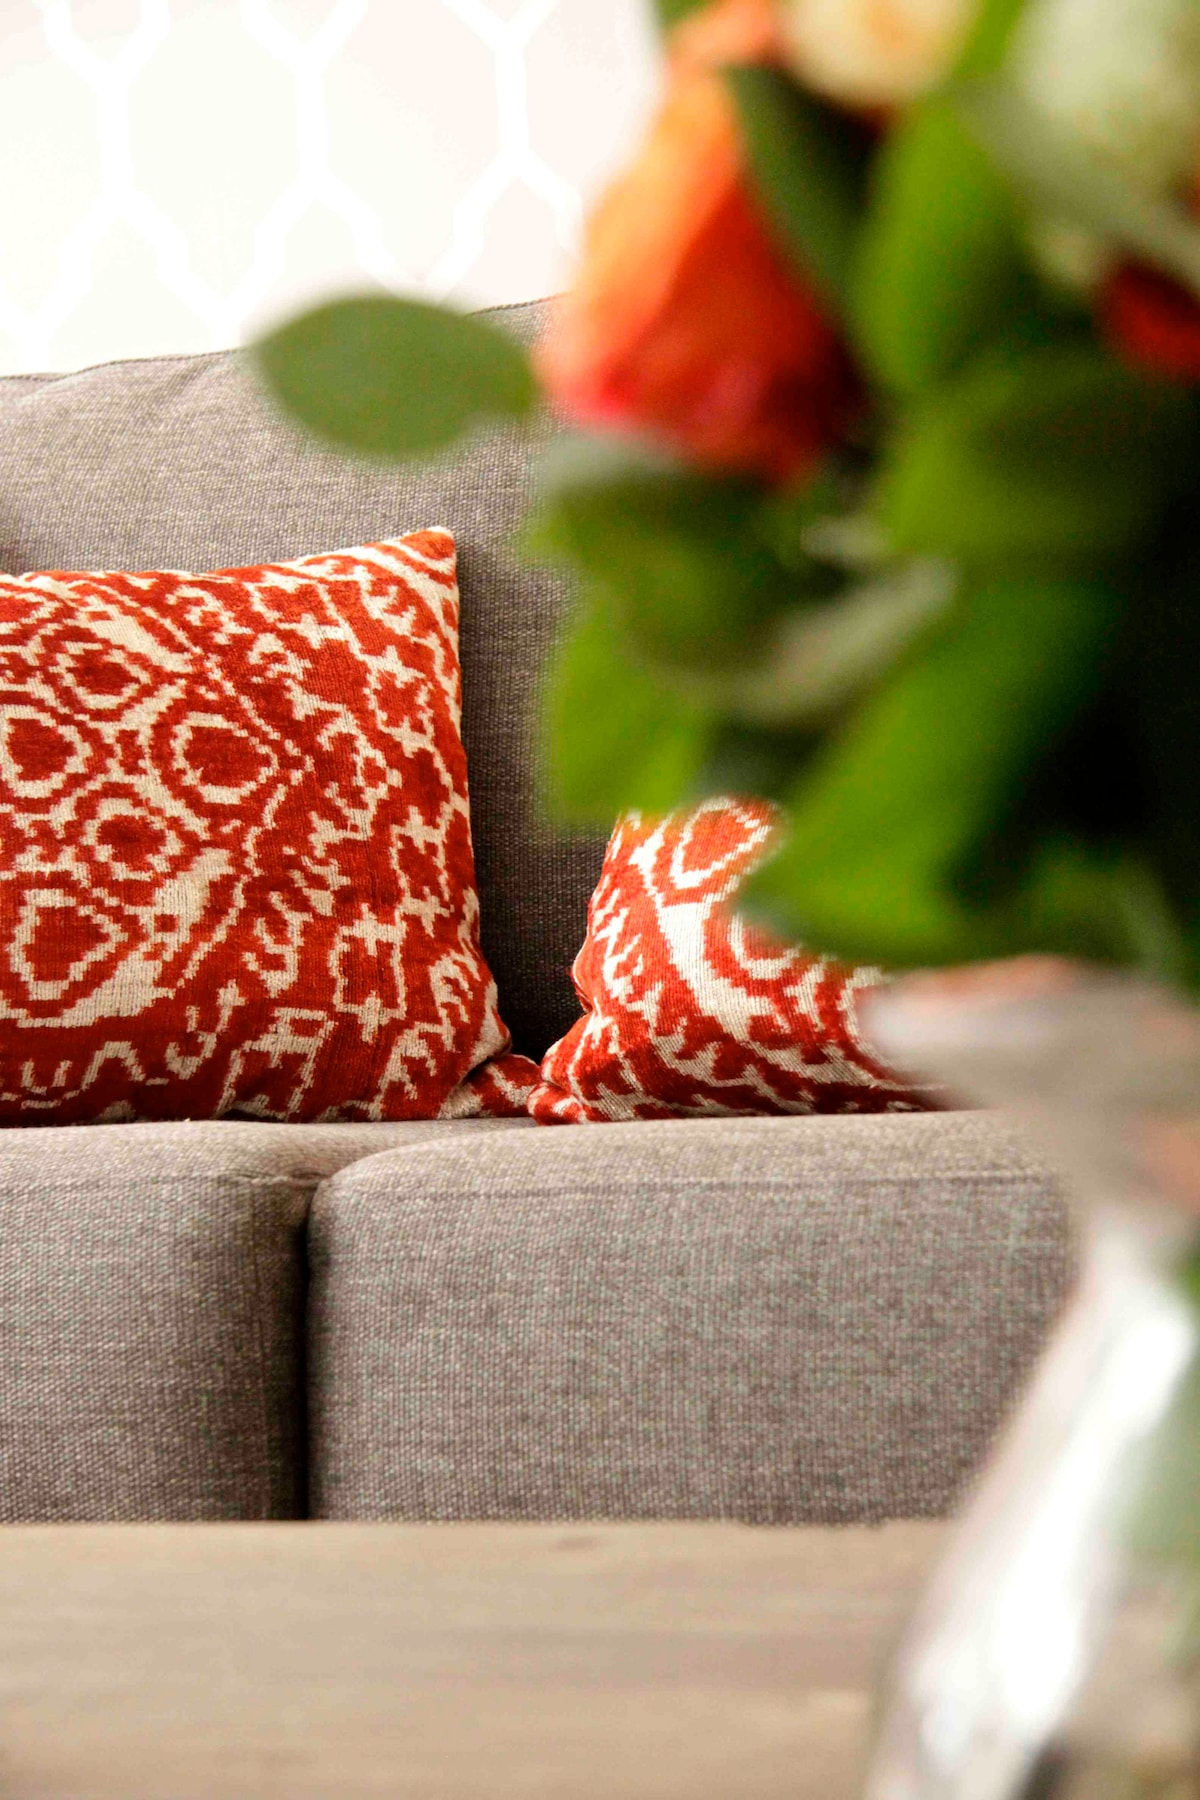 Comfy, comfy sofa that folds out into an ever comfier queen size bed. Sweet dreams...